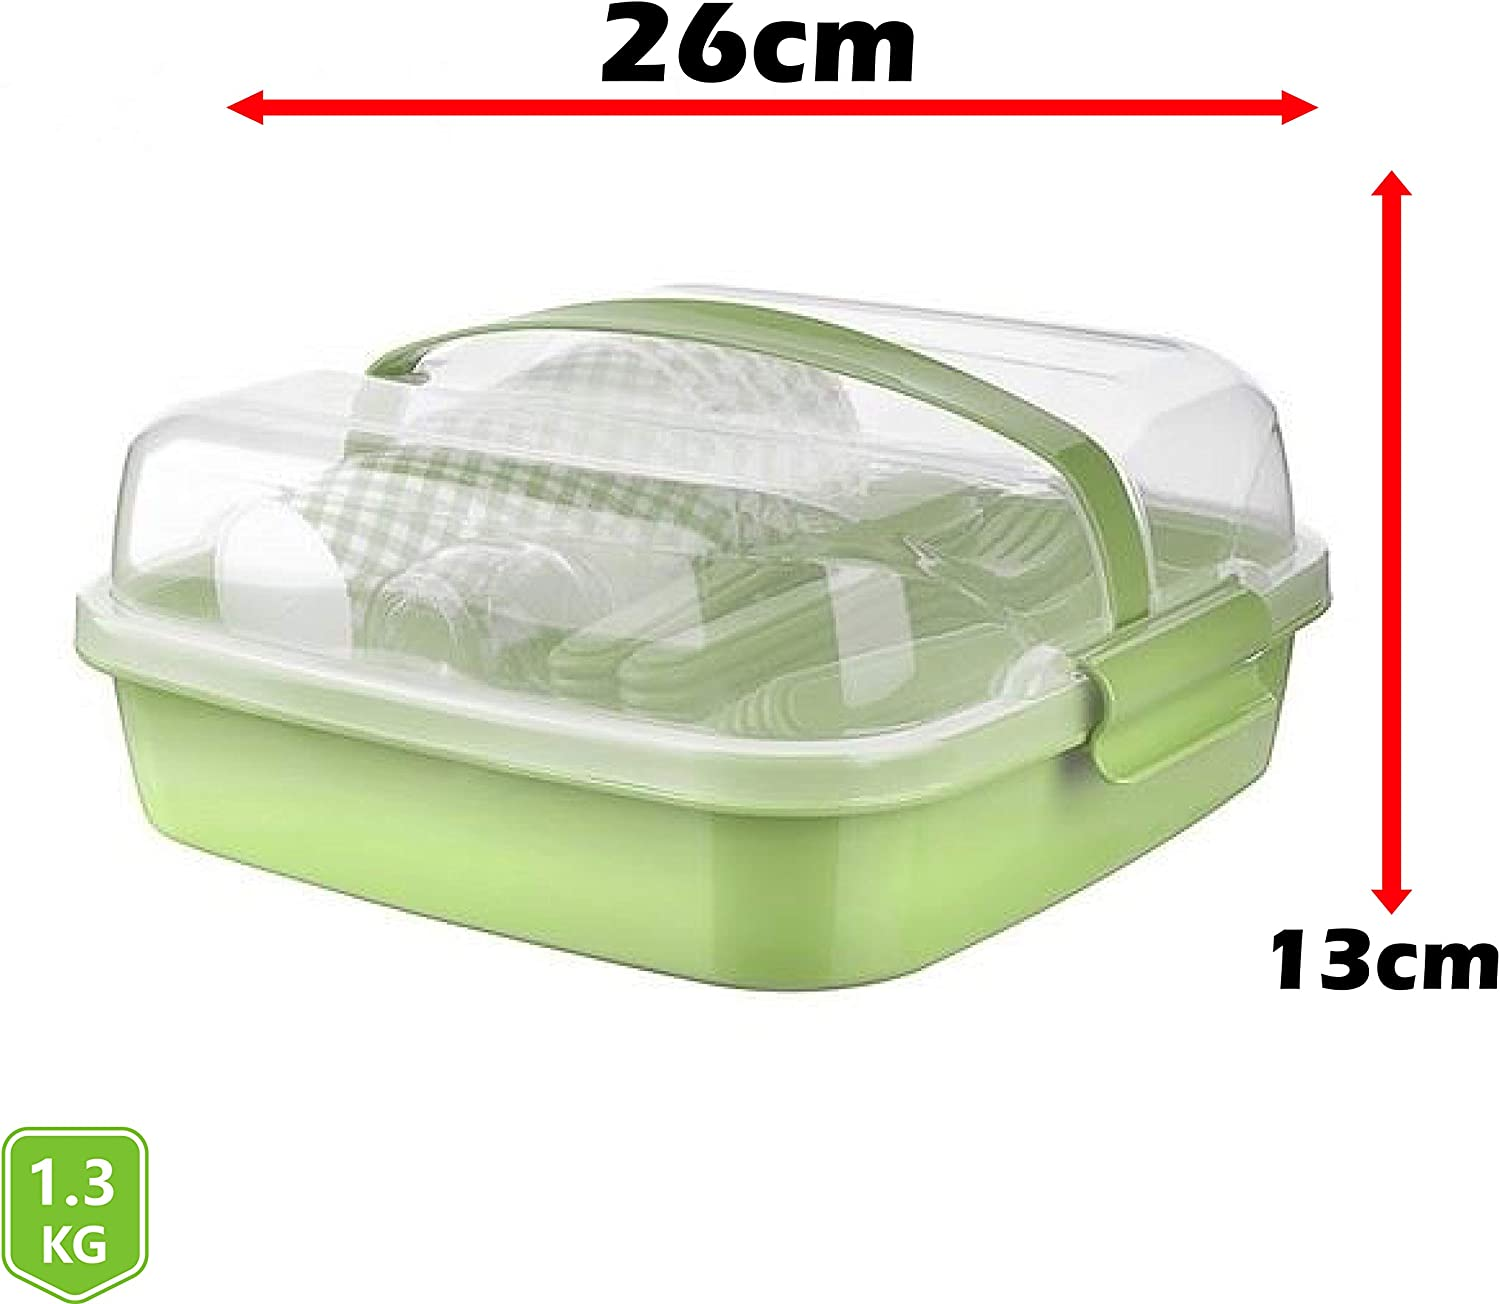 Shopivaa Green Lightweight /& Durable BPA Free Plastic Picnic Set//Camping Set//Outdoor Dining//Party Set With Carry Case | Dishwasher Safe Serves 6 People 32 Piece